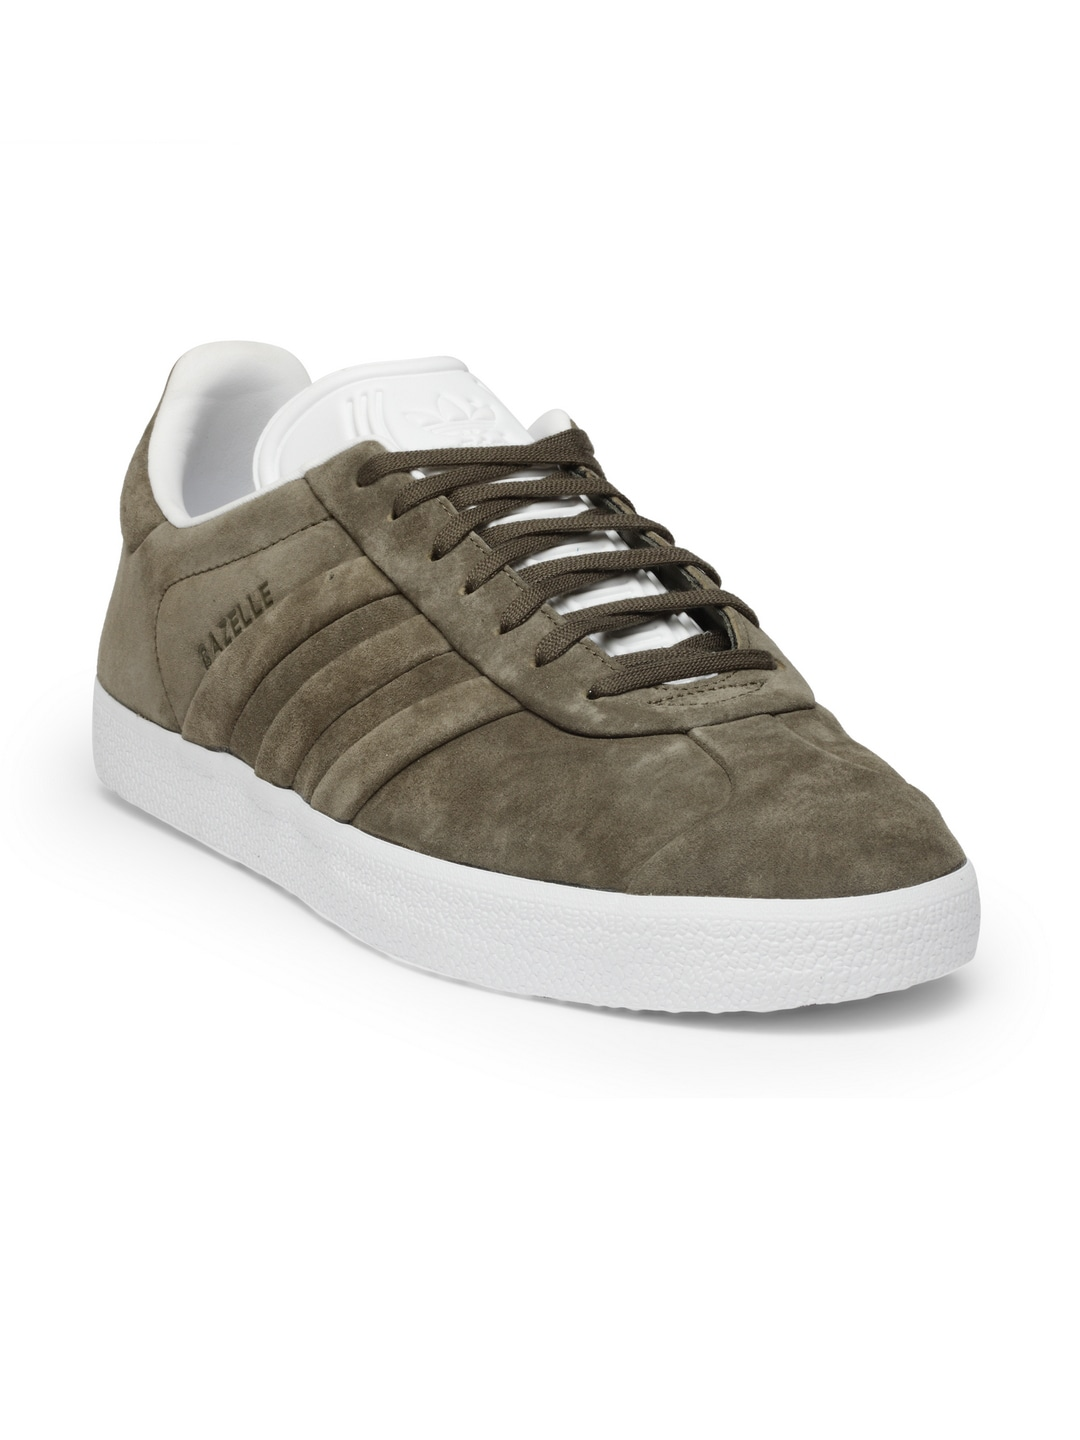 official photos eafb4 908d0 Adidas Gazelle - Buy Adidas Gazelle sneakers online in India